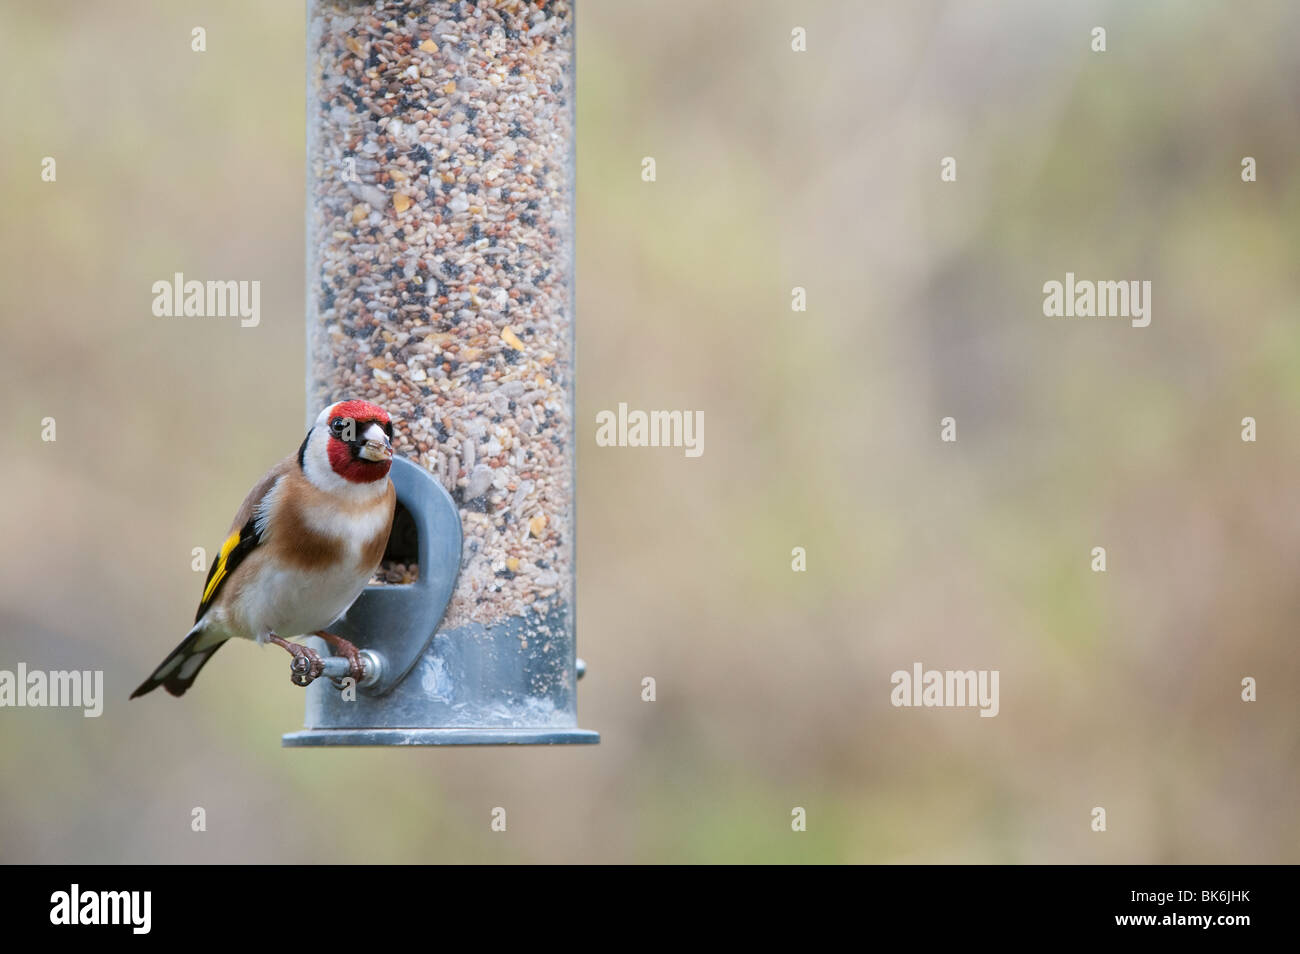 Goldfinch on a bird seed feeder - Stock Image